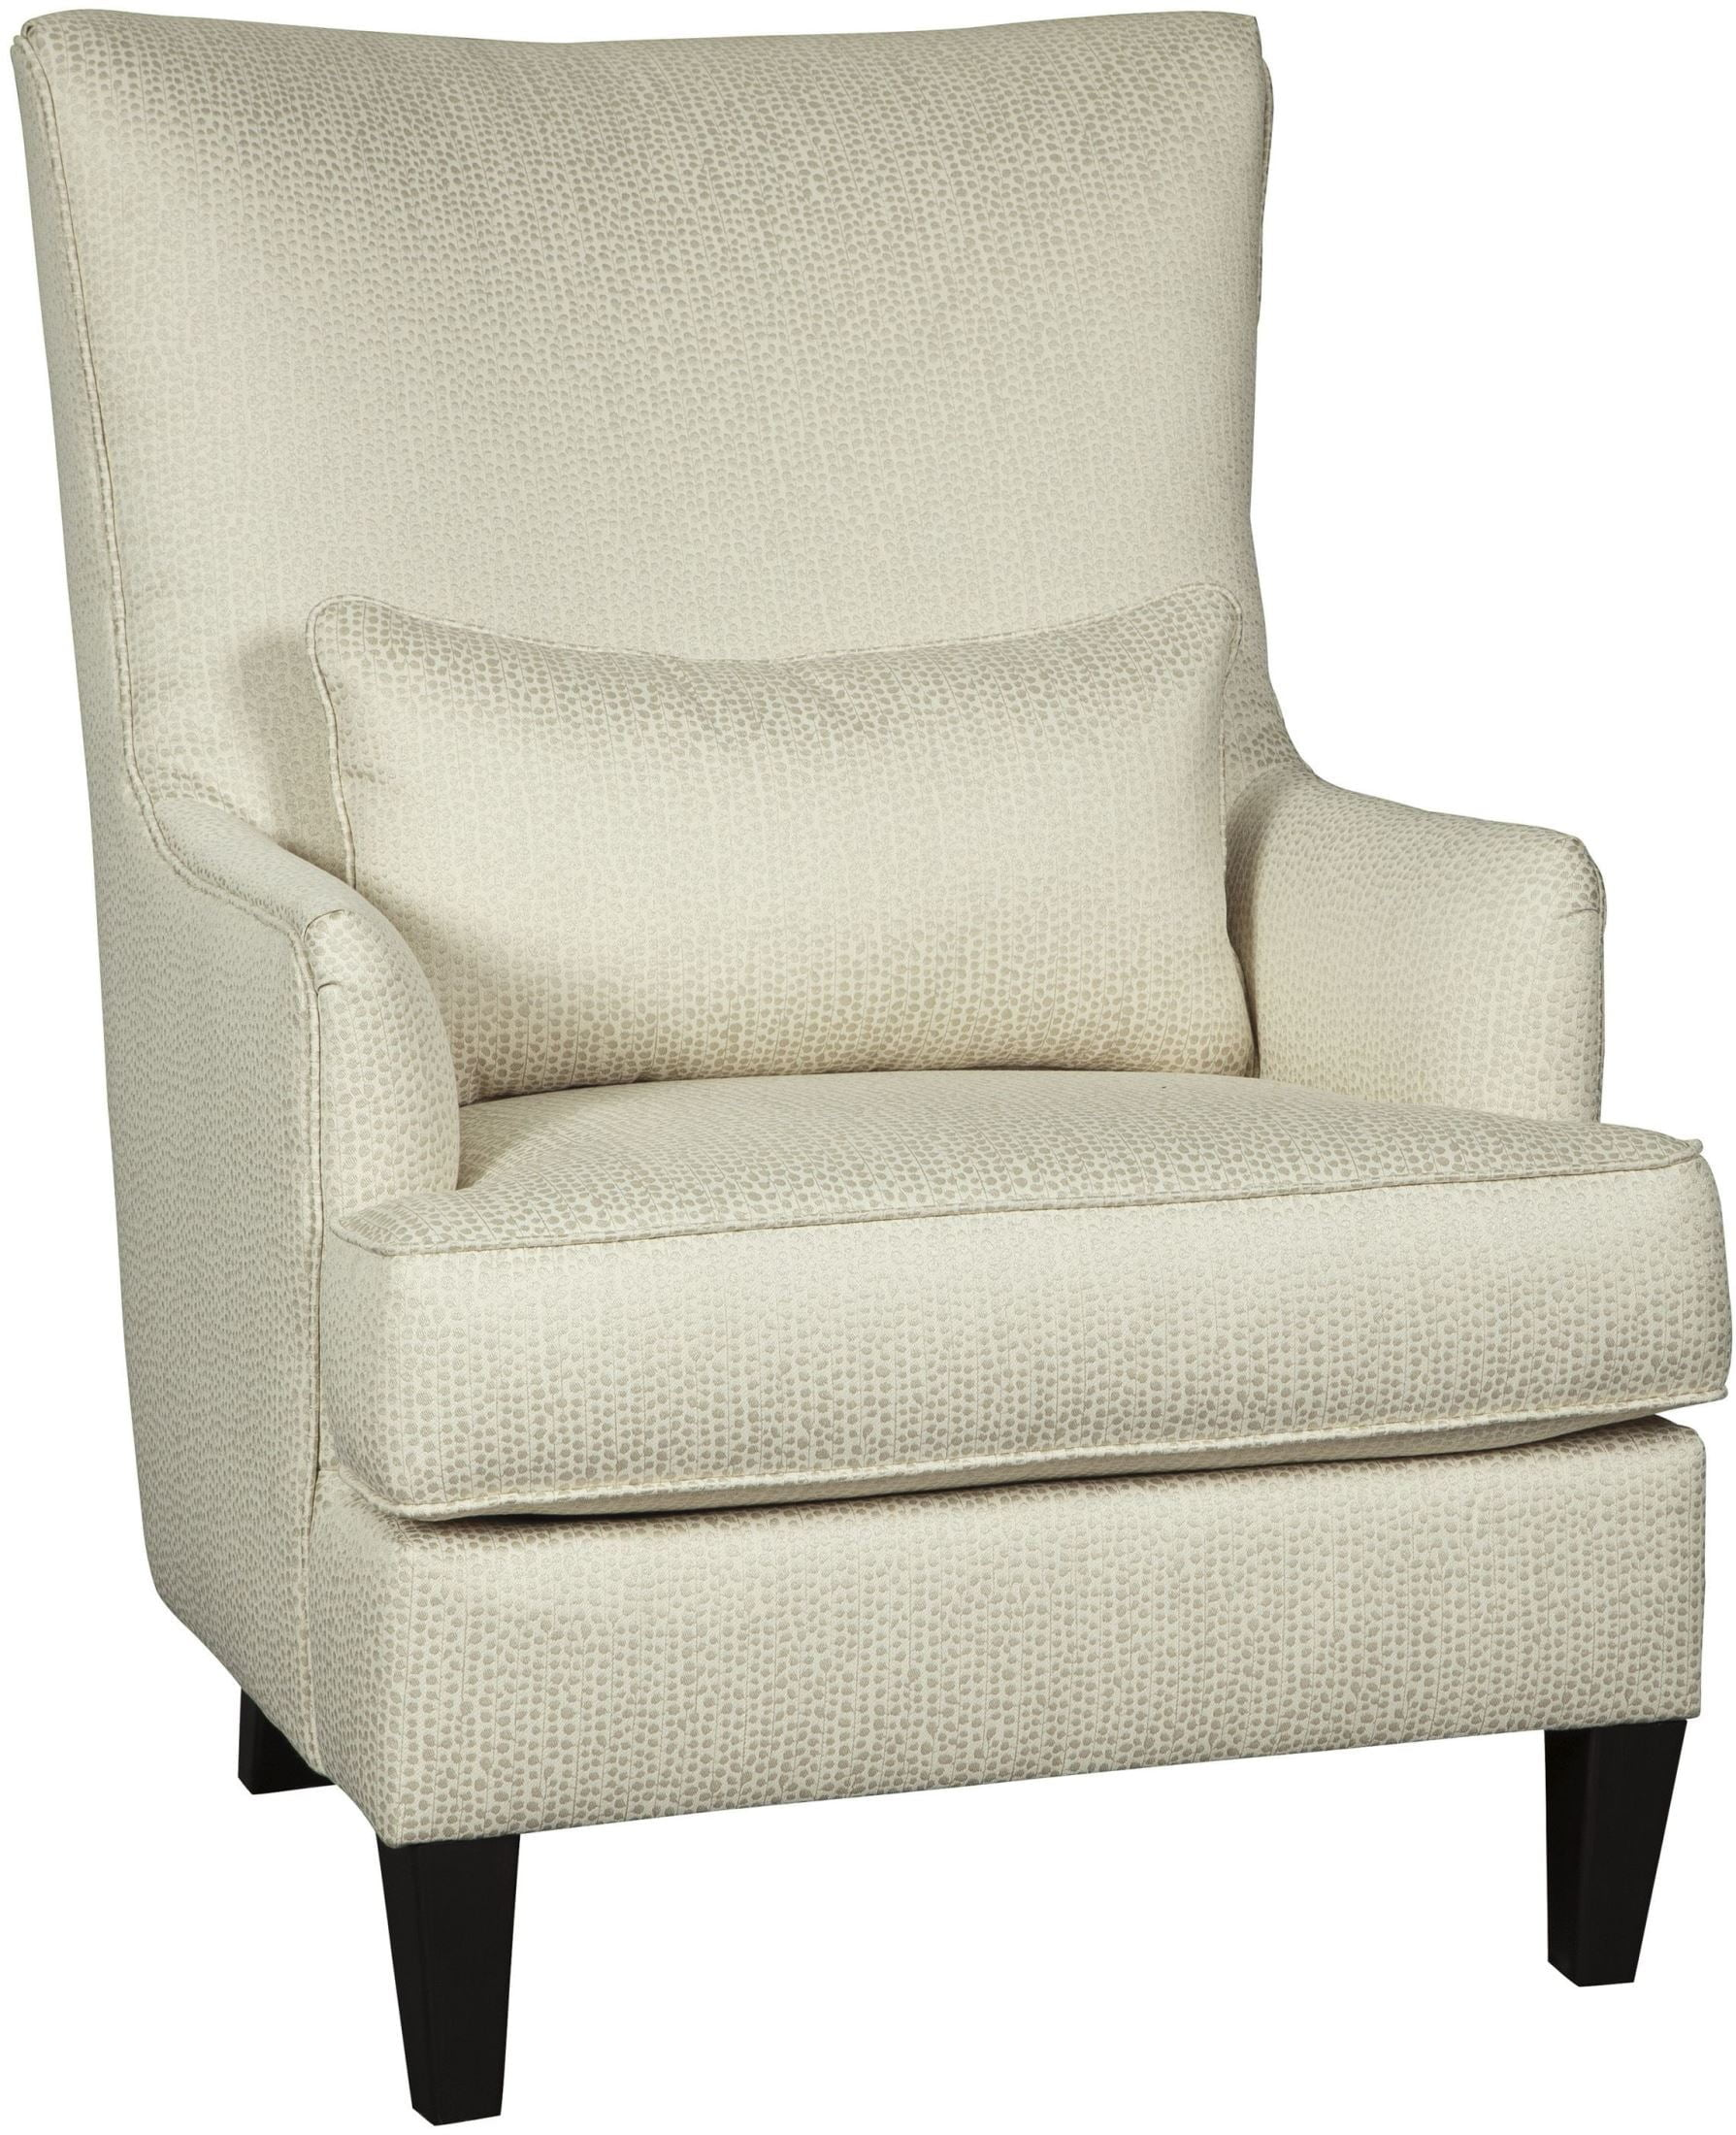 Paseo Ivory Accent Chair From Ashley Coleman Furniture